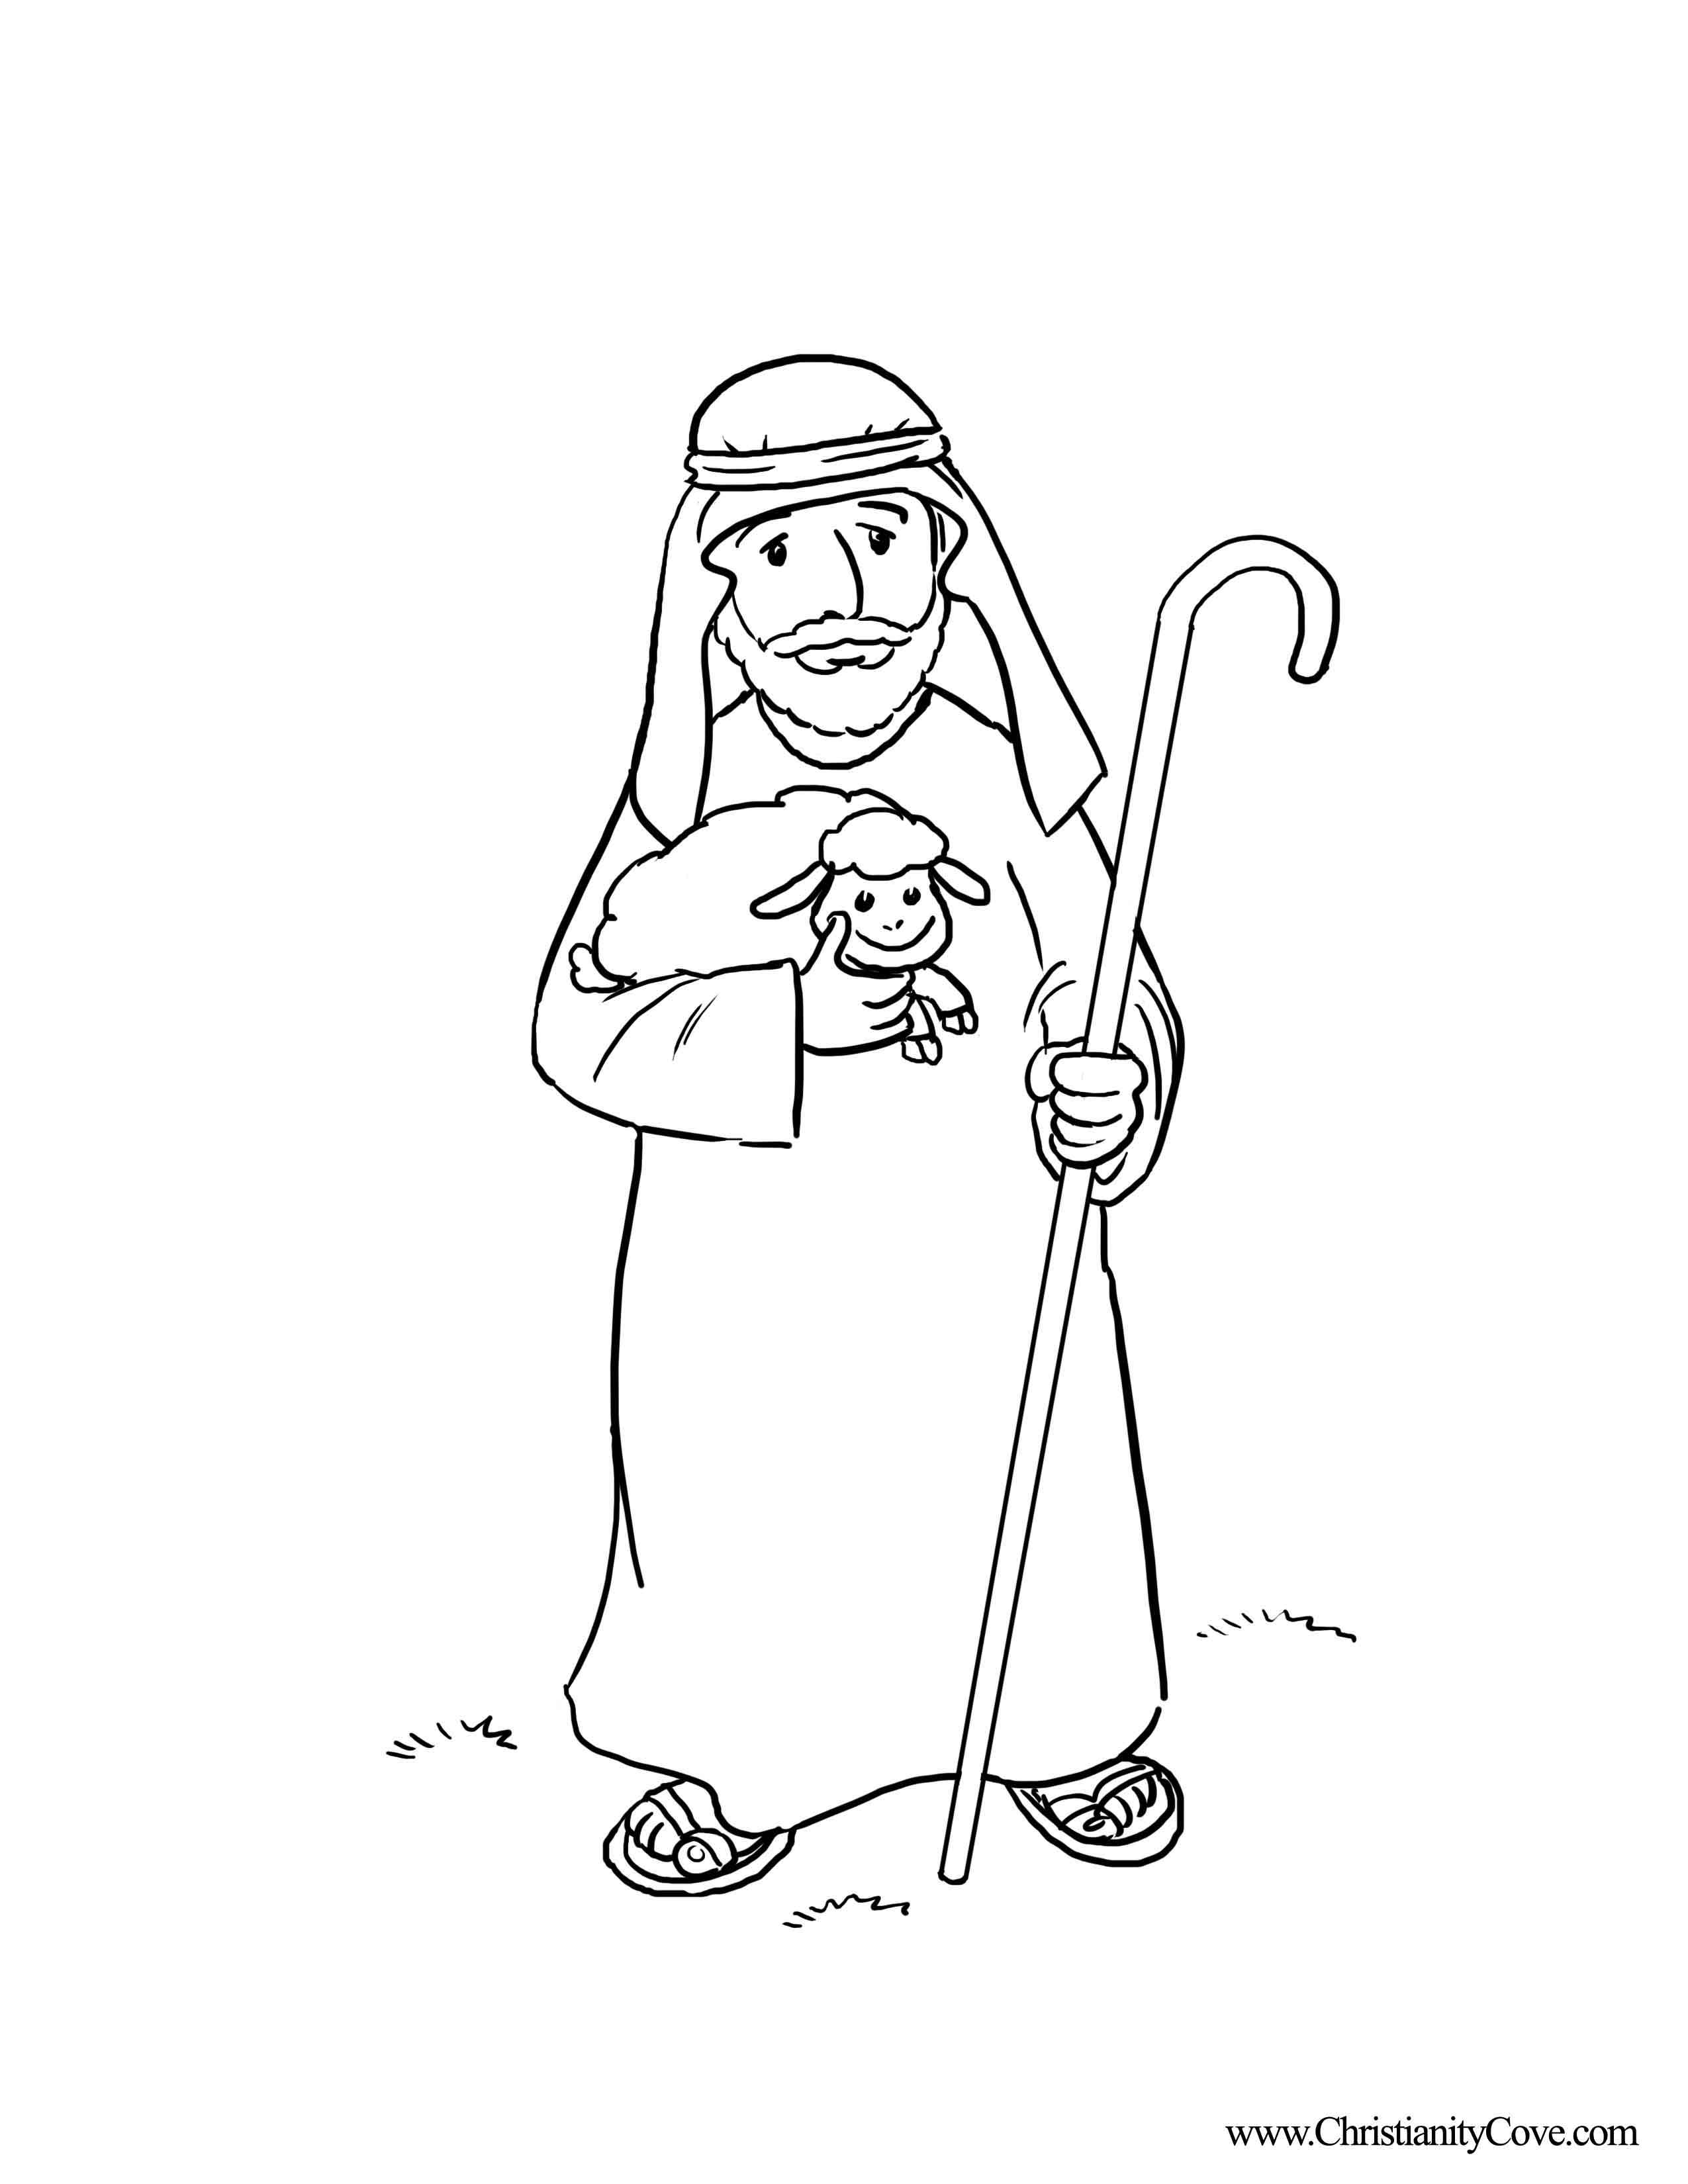 The Good Shepherd Coloring Page Good Shepherd Coloring Pages Free Coloring Home